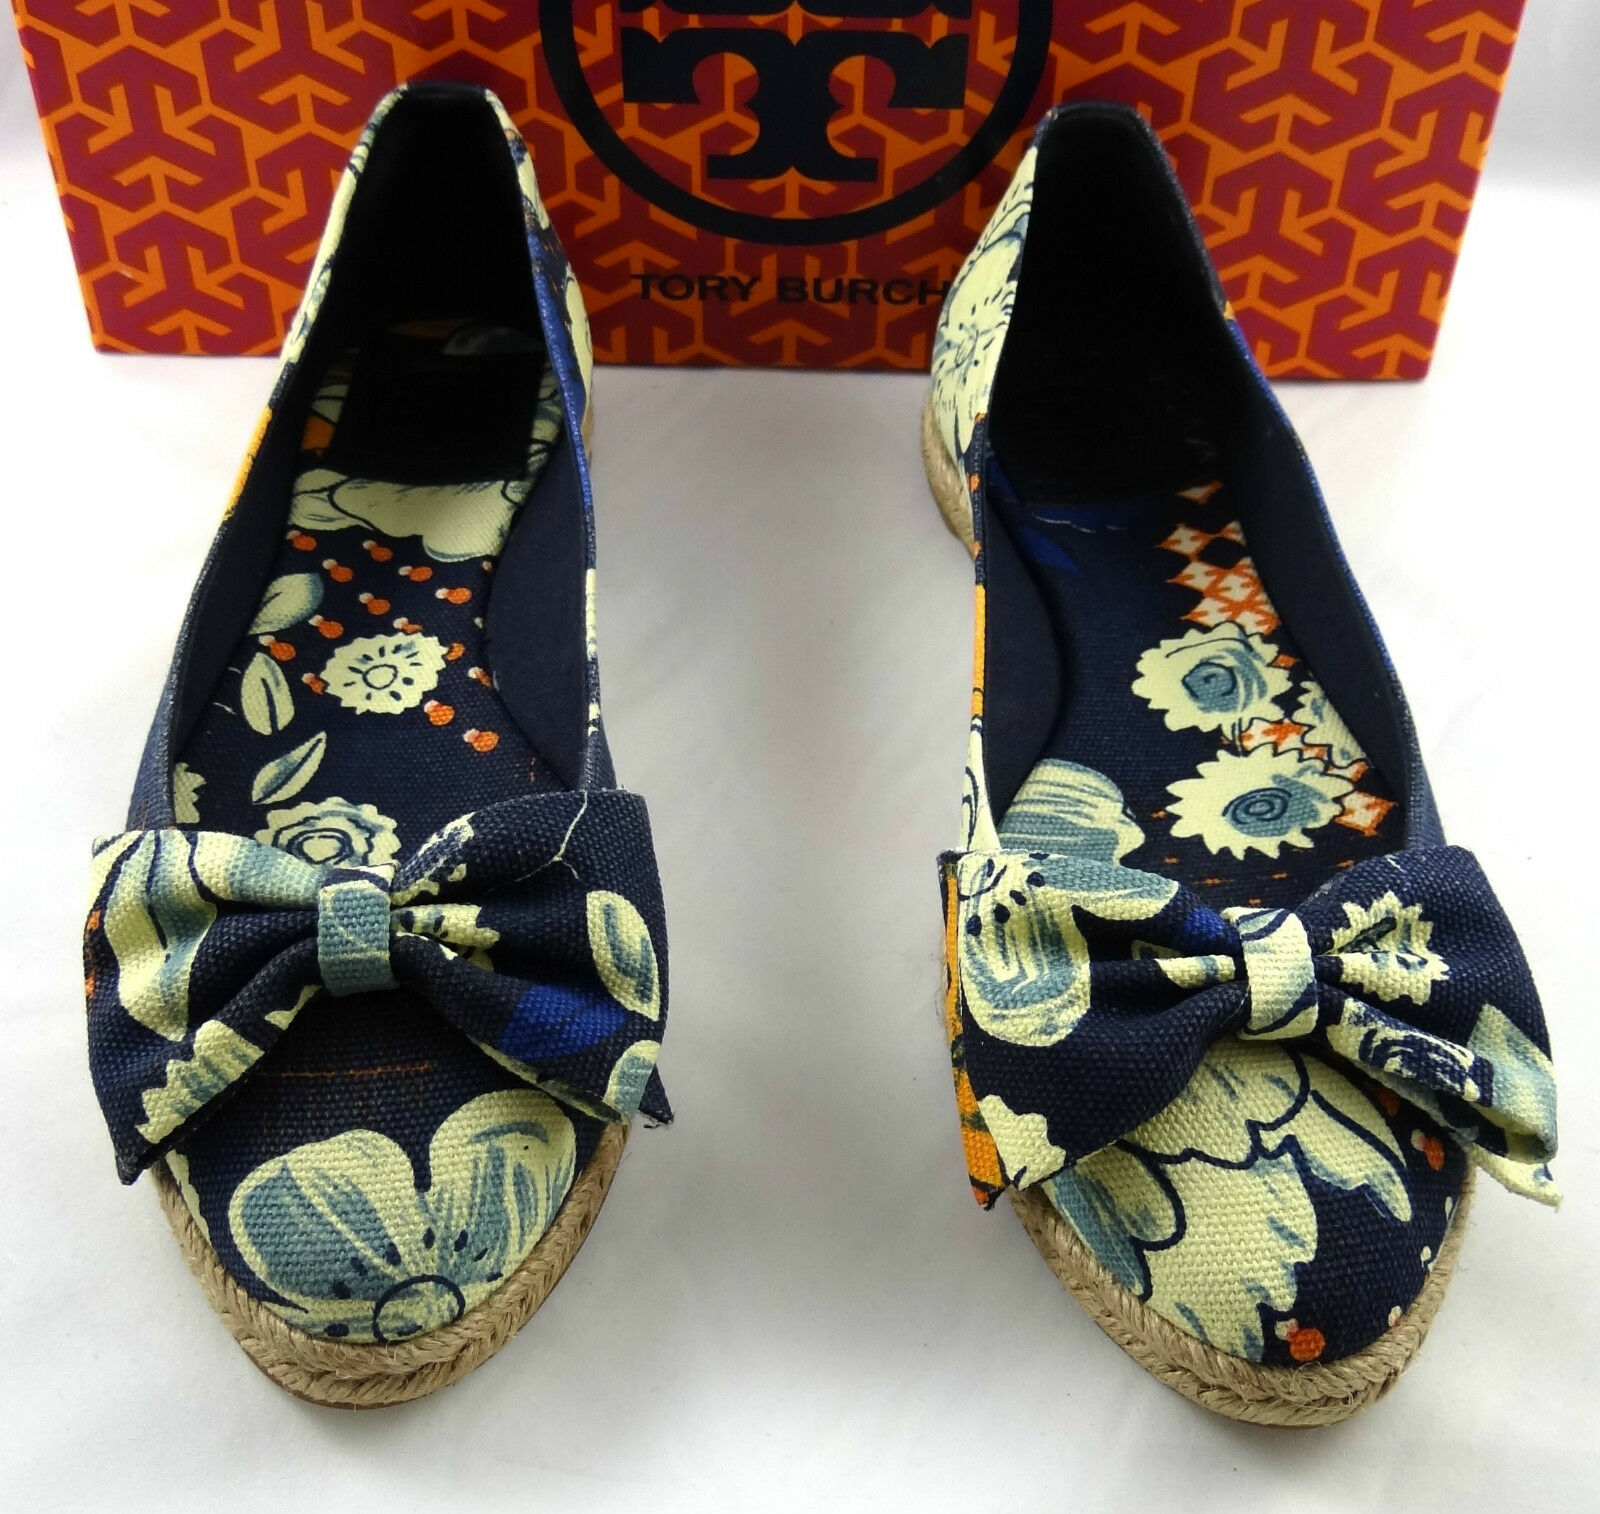 Tory Burch Tamsin Espadrille Slip On Flat shoes 5-11